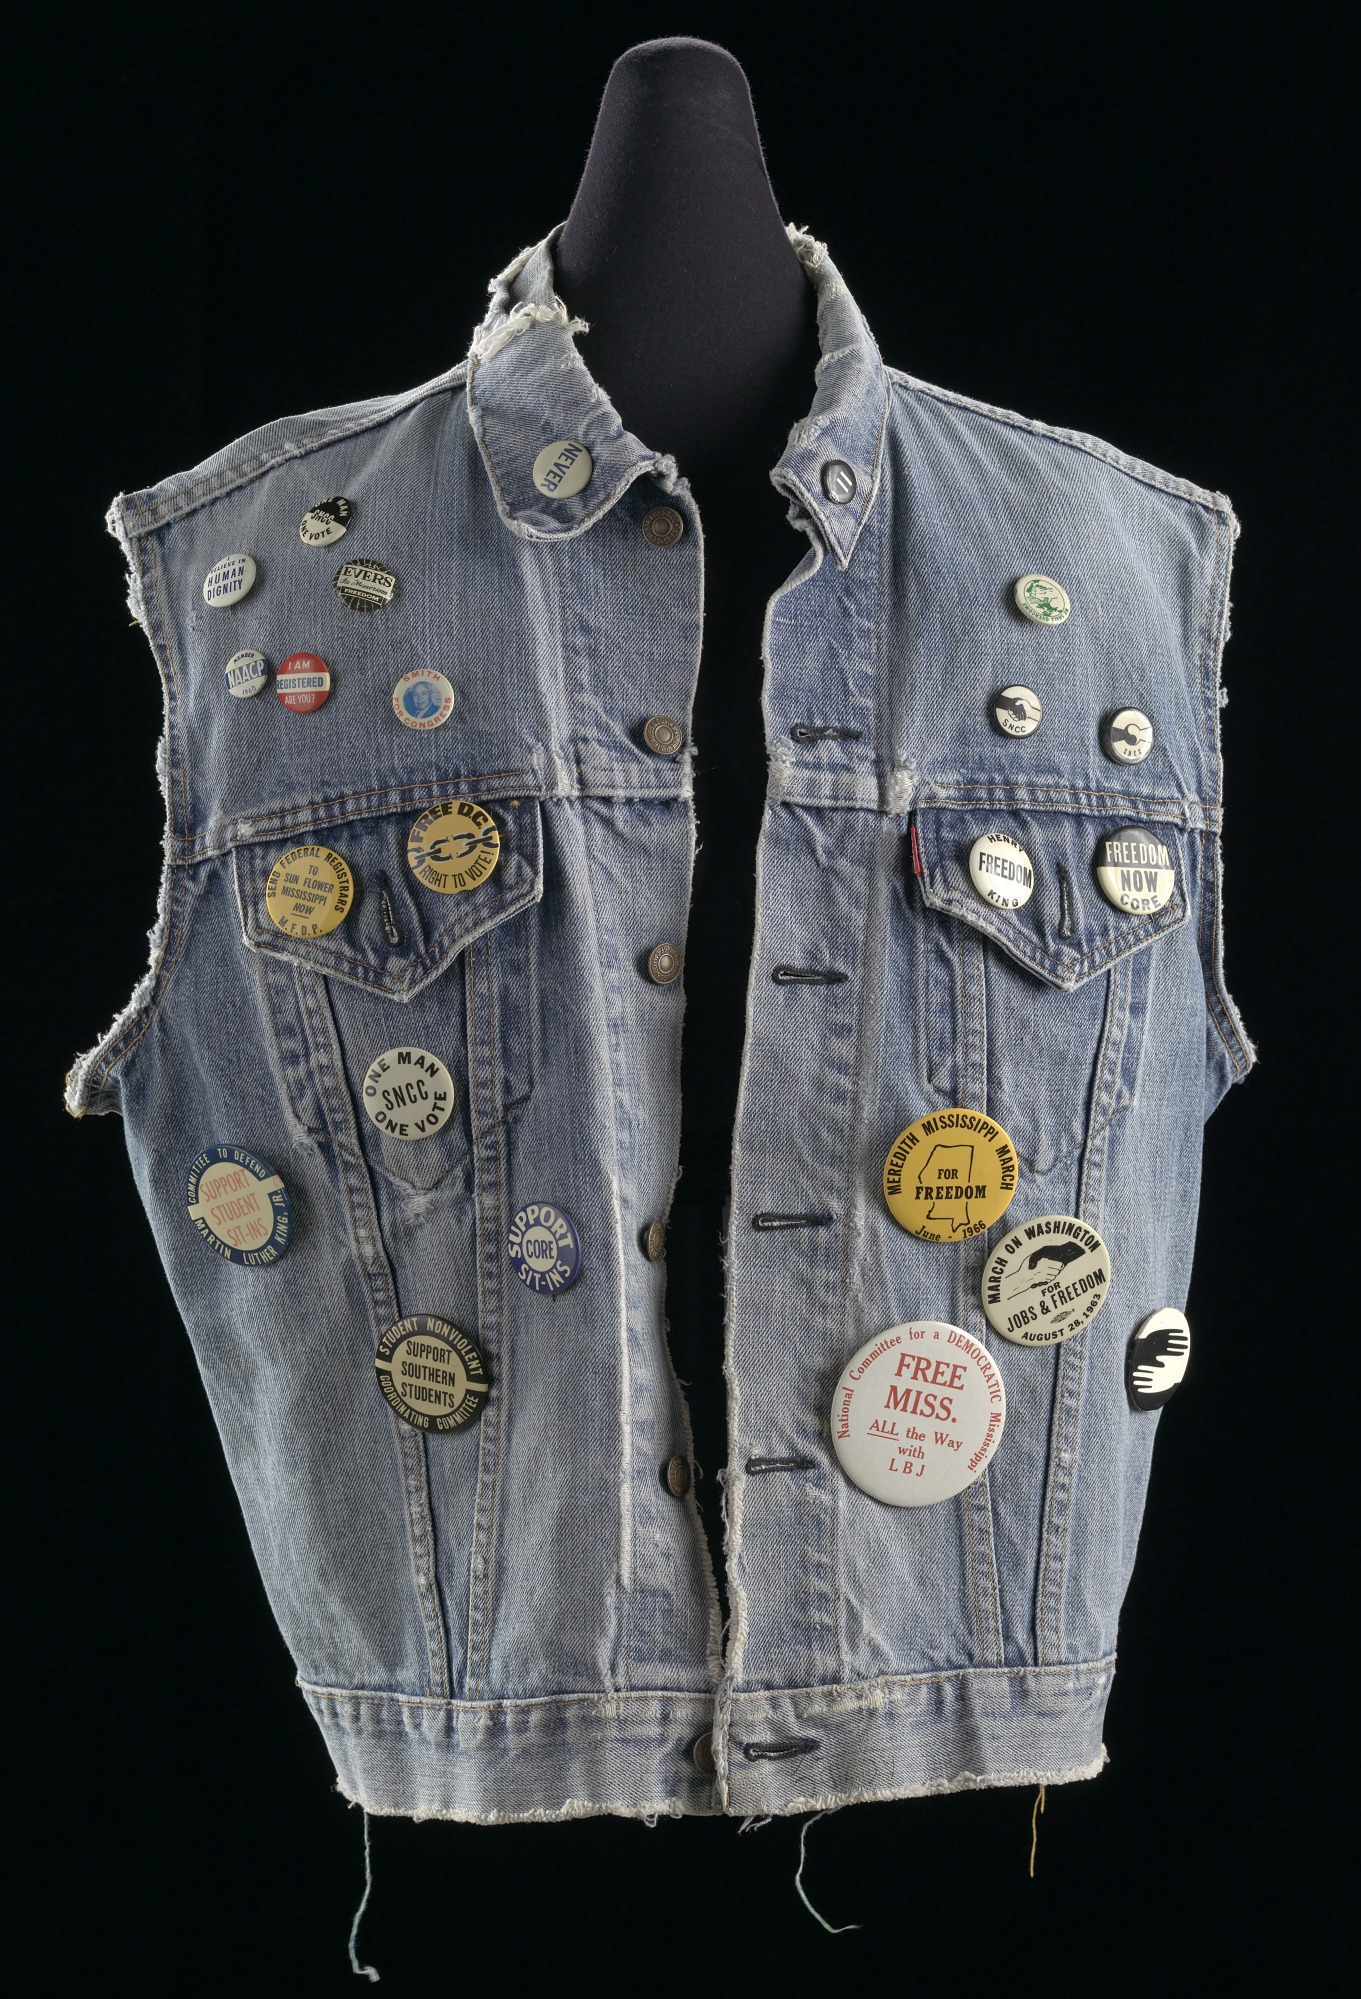 images for Denim vest worn by Joan Mulholland during Civil Rights Movement